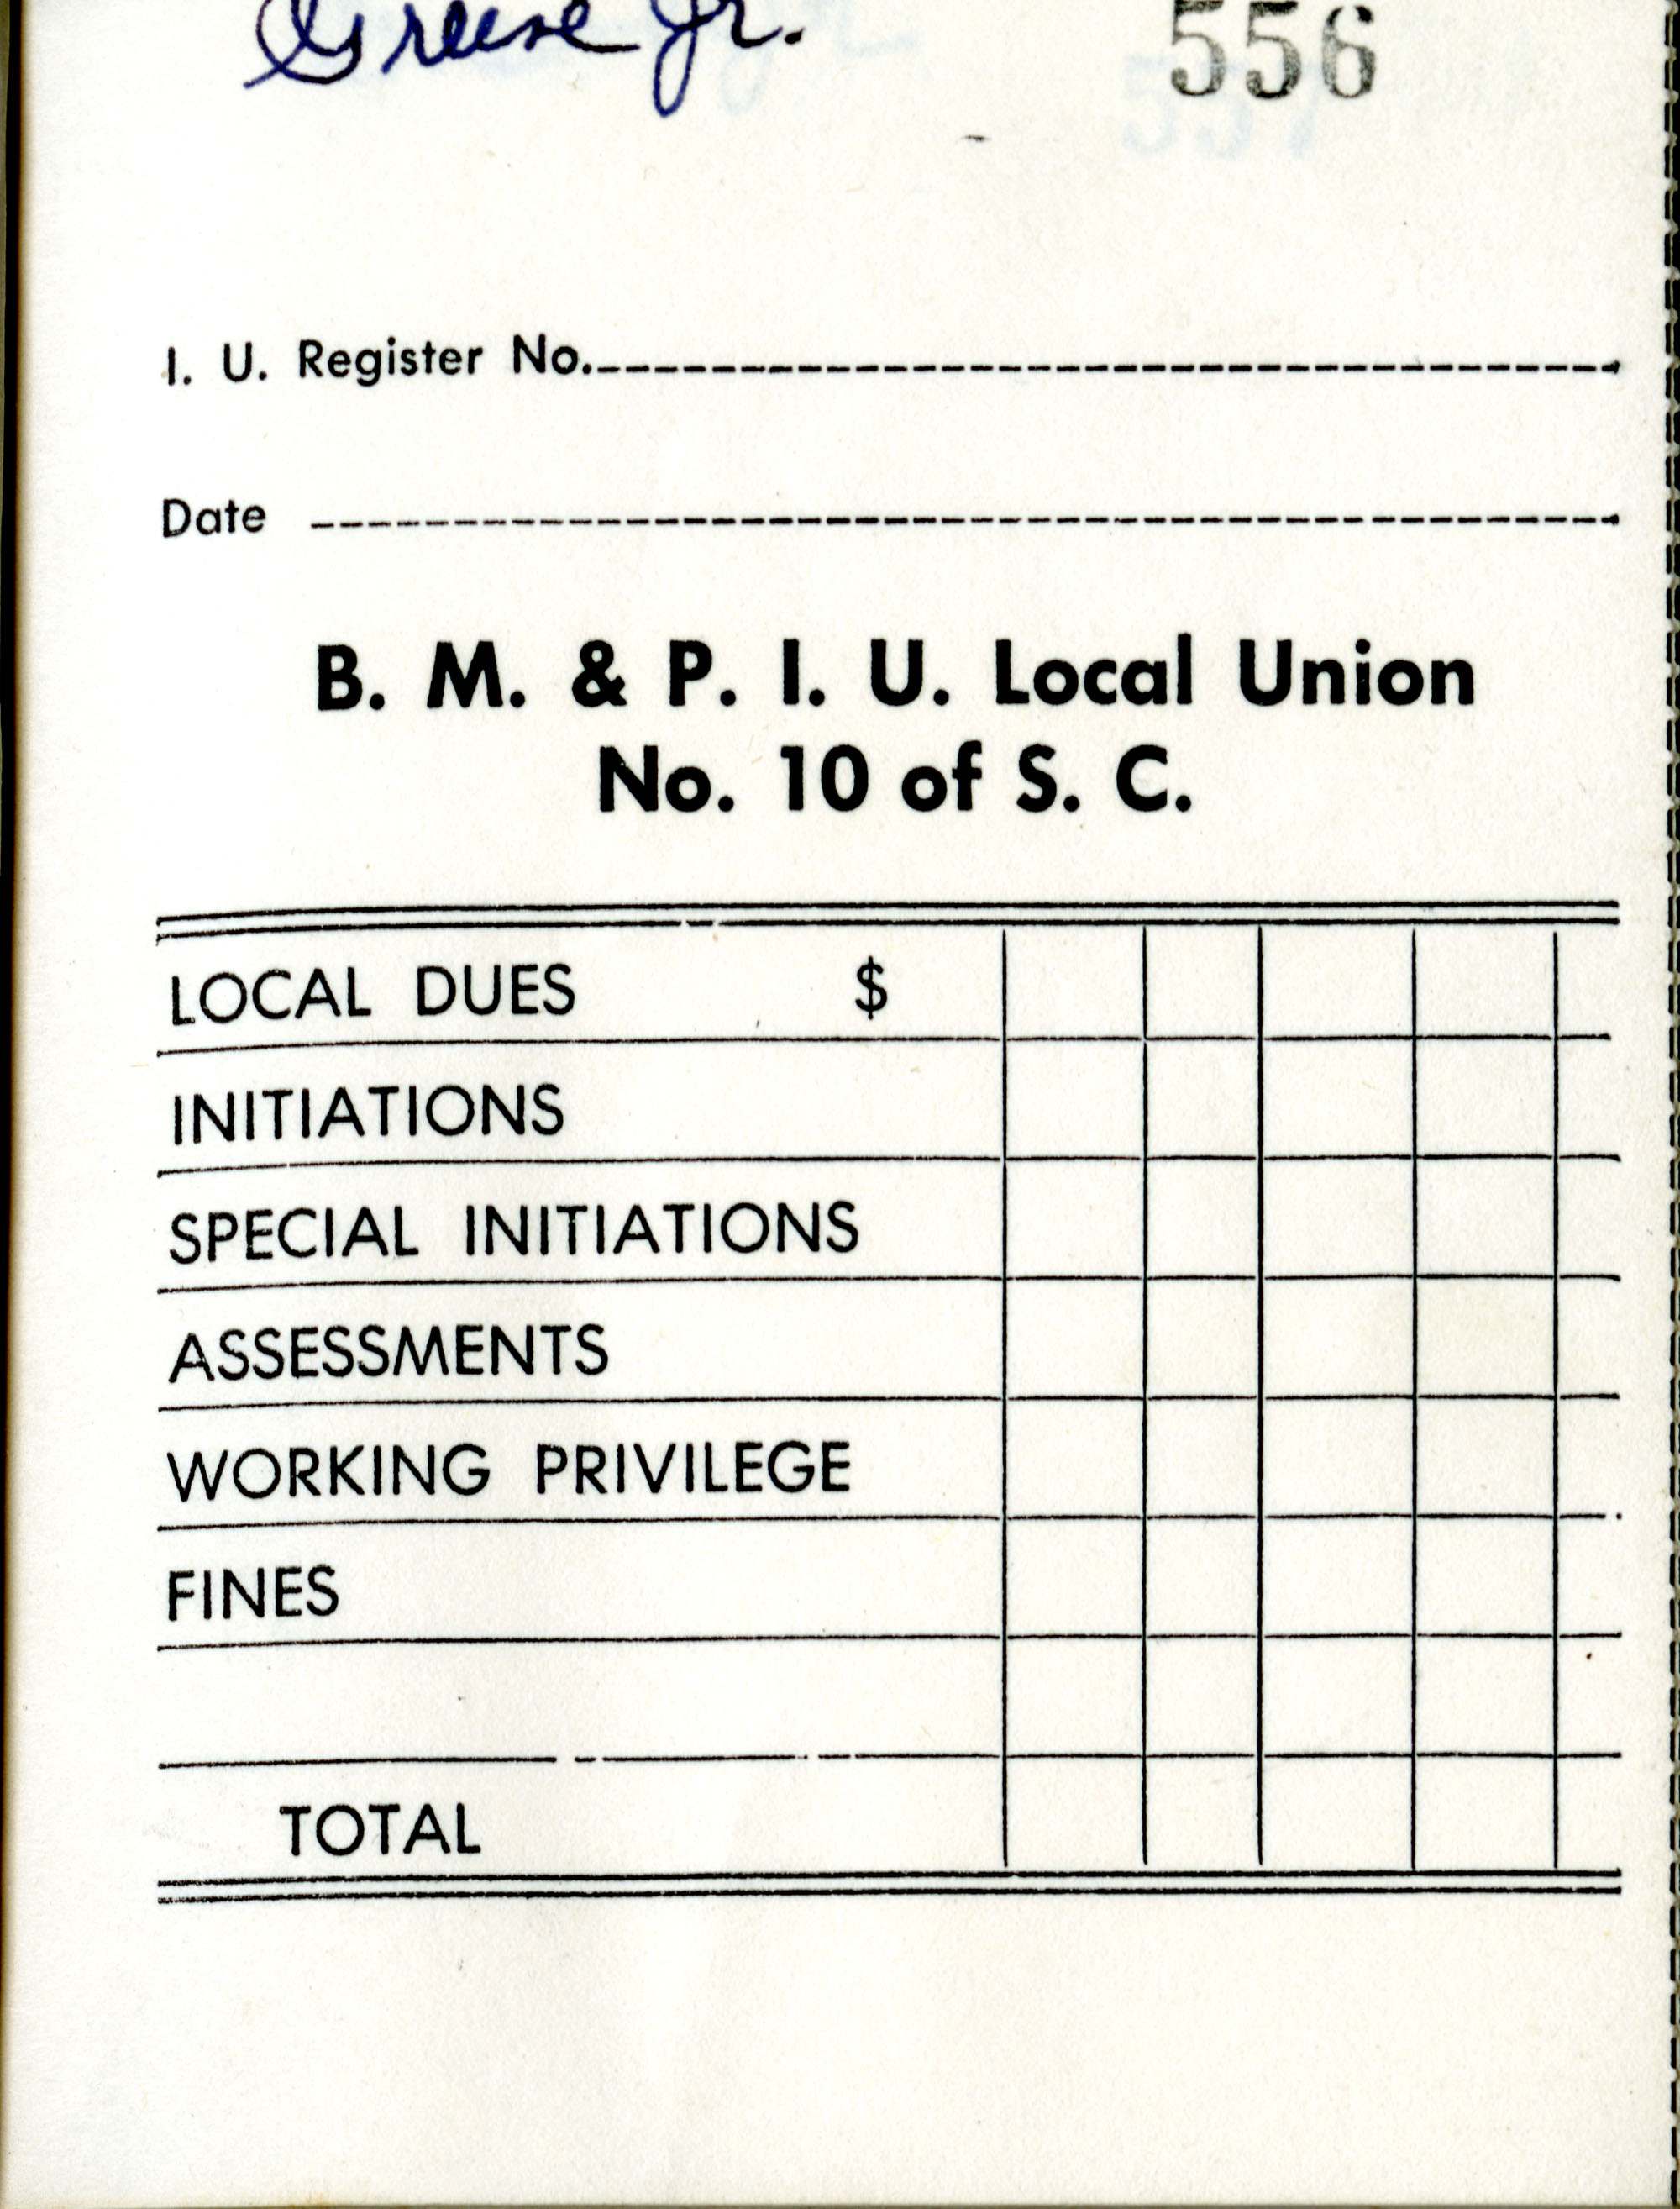 Receipt Book 6, Page 7